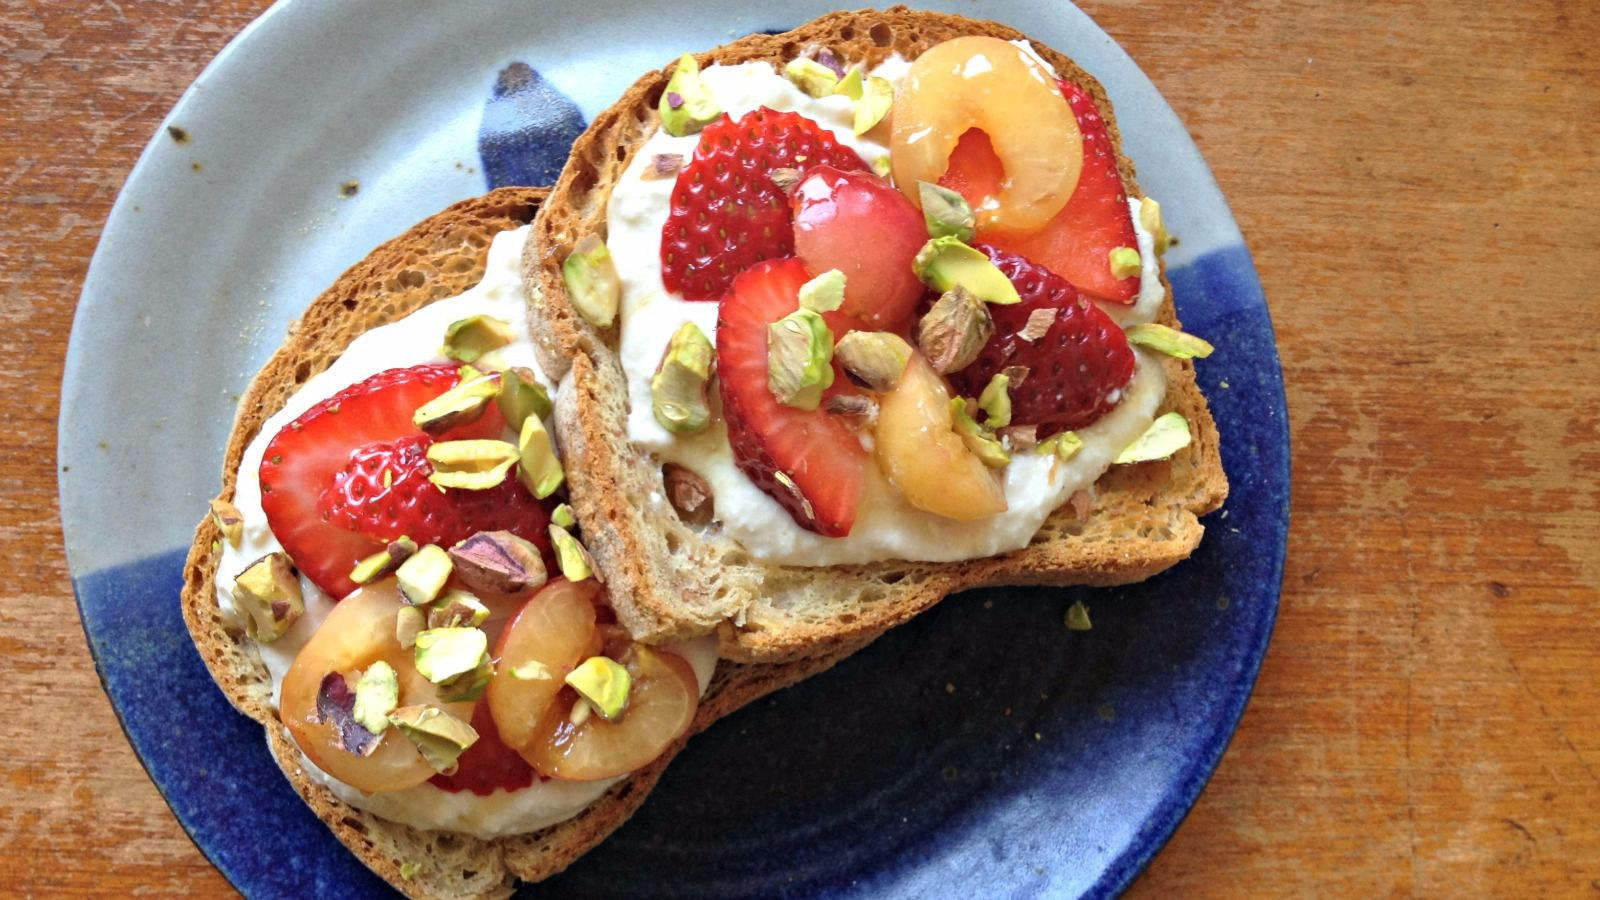 Ricotta Toast With Cherries,Strawberries and Pistachios